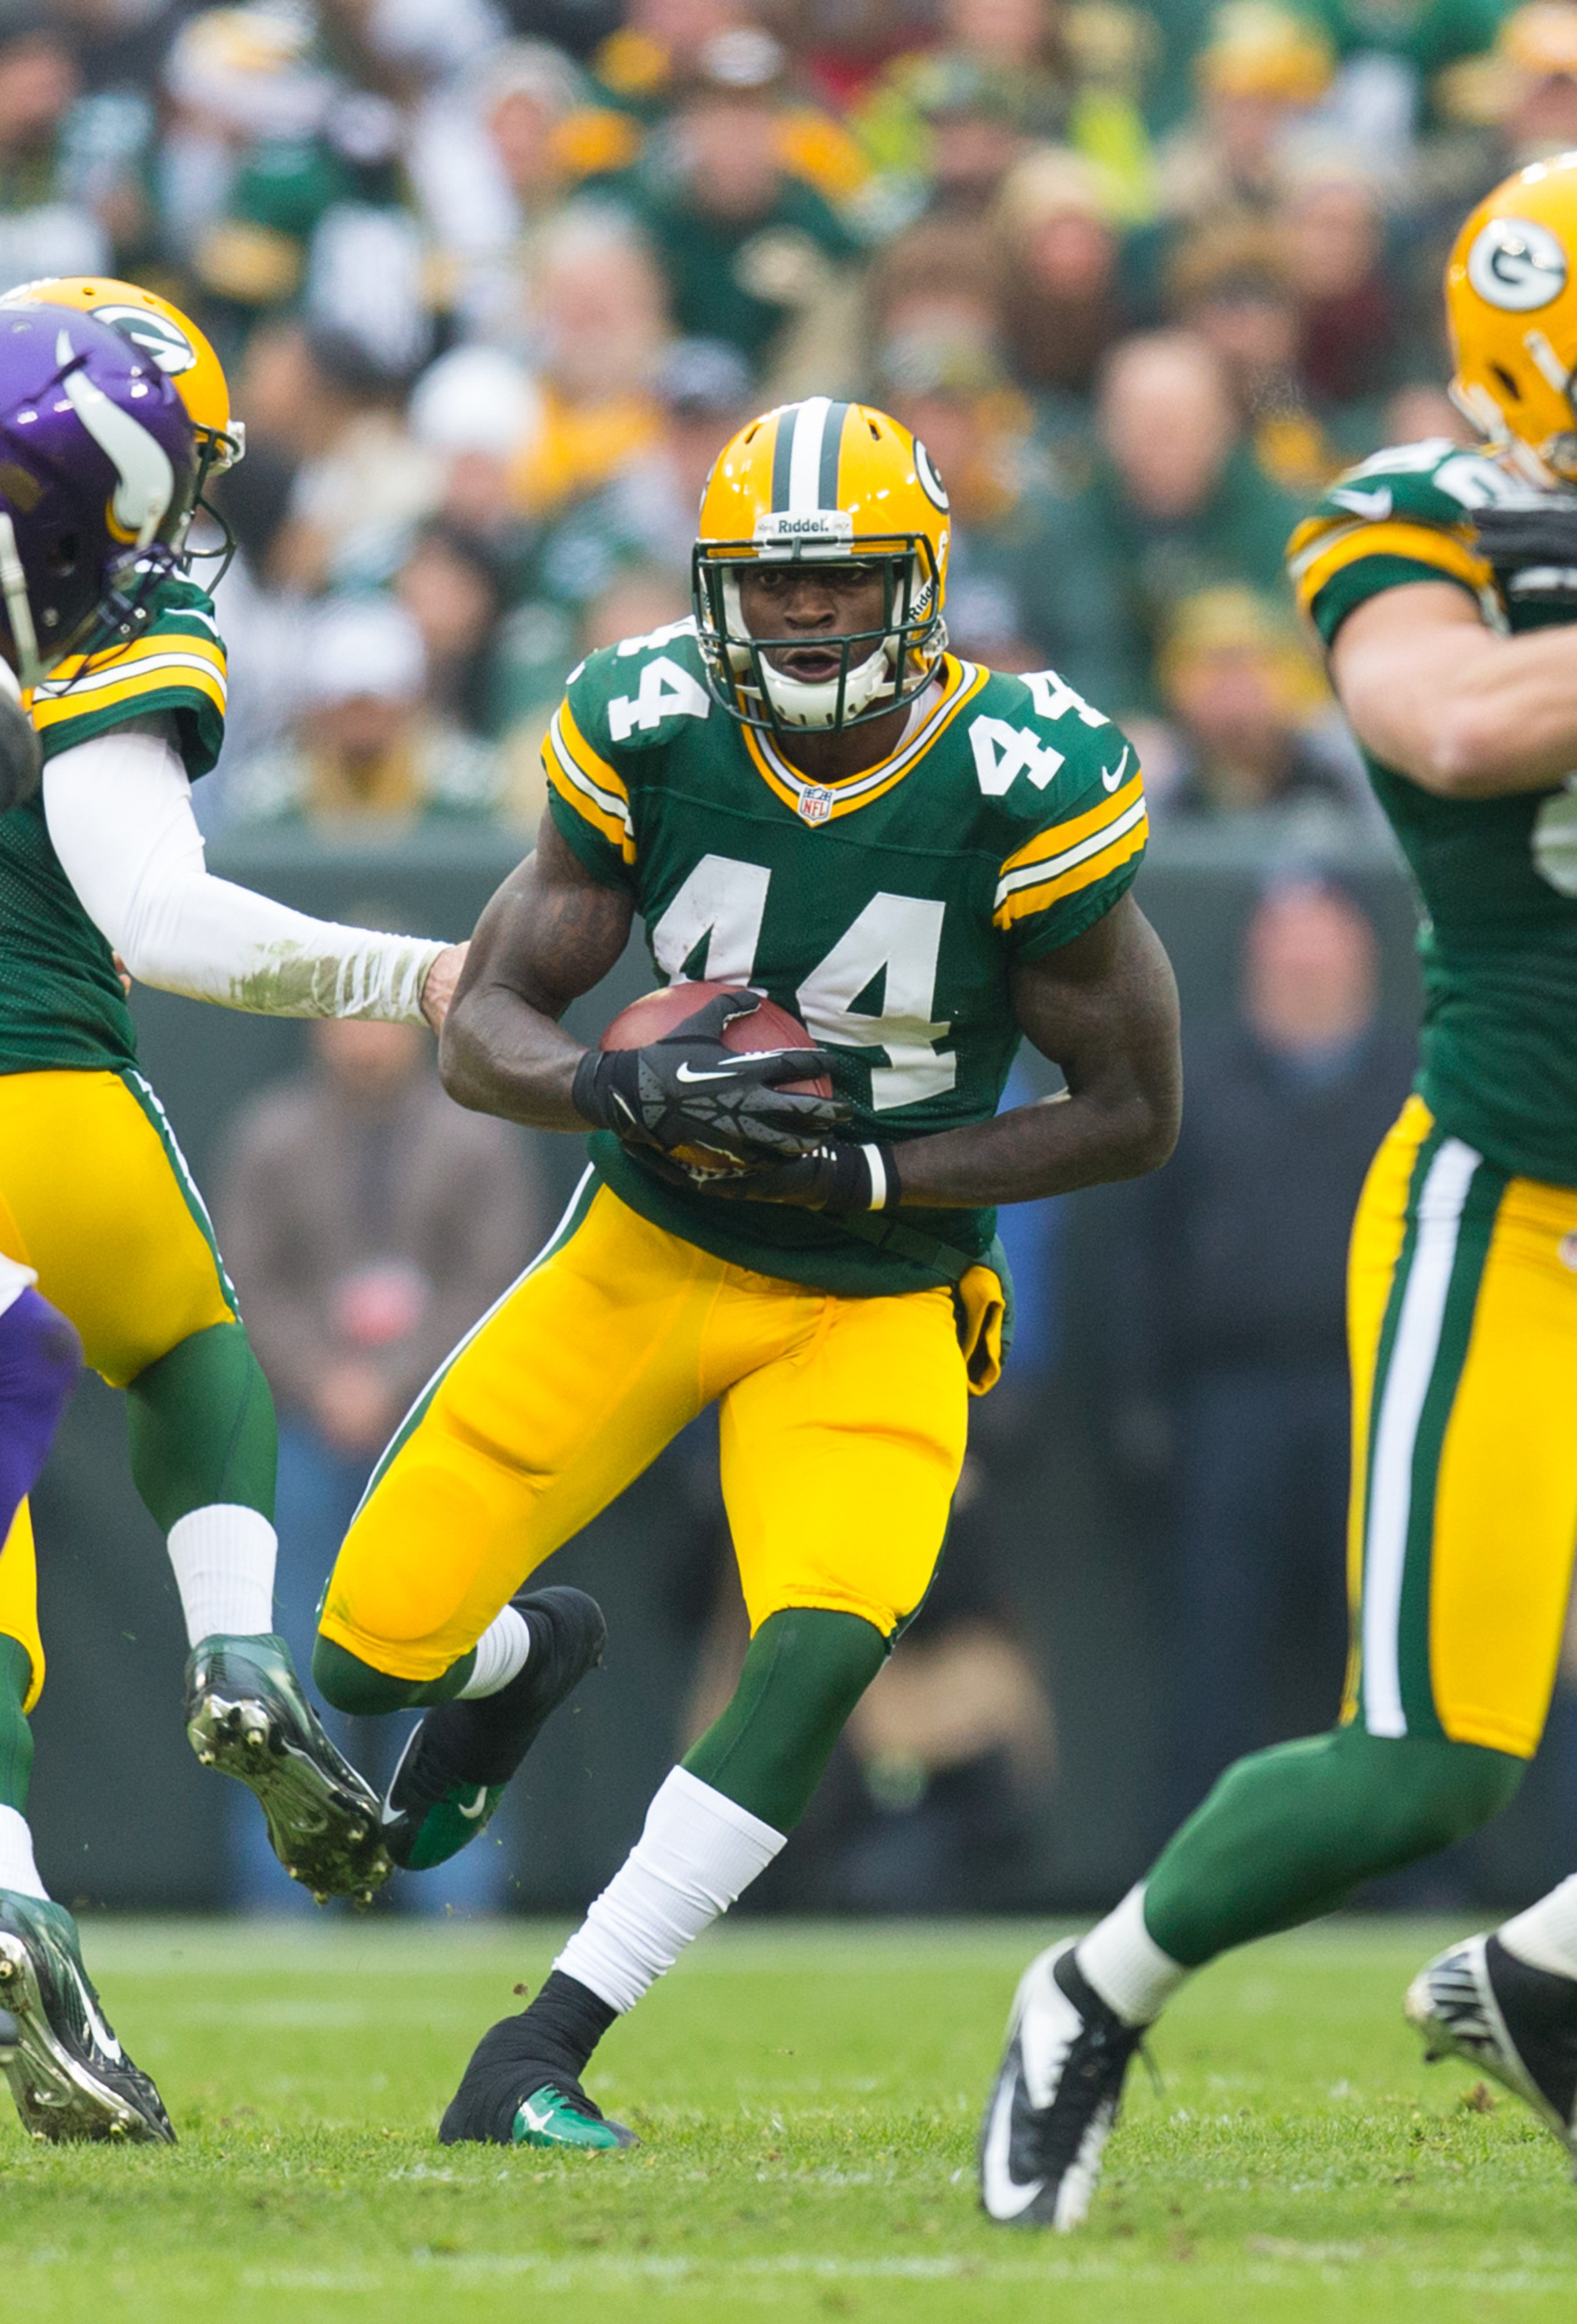 James Starks (44) makes a cut during a 2012 game against the Minnesota Vikings